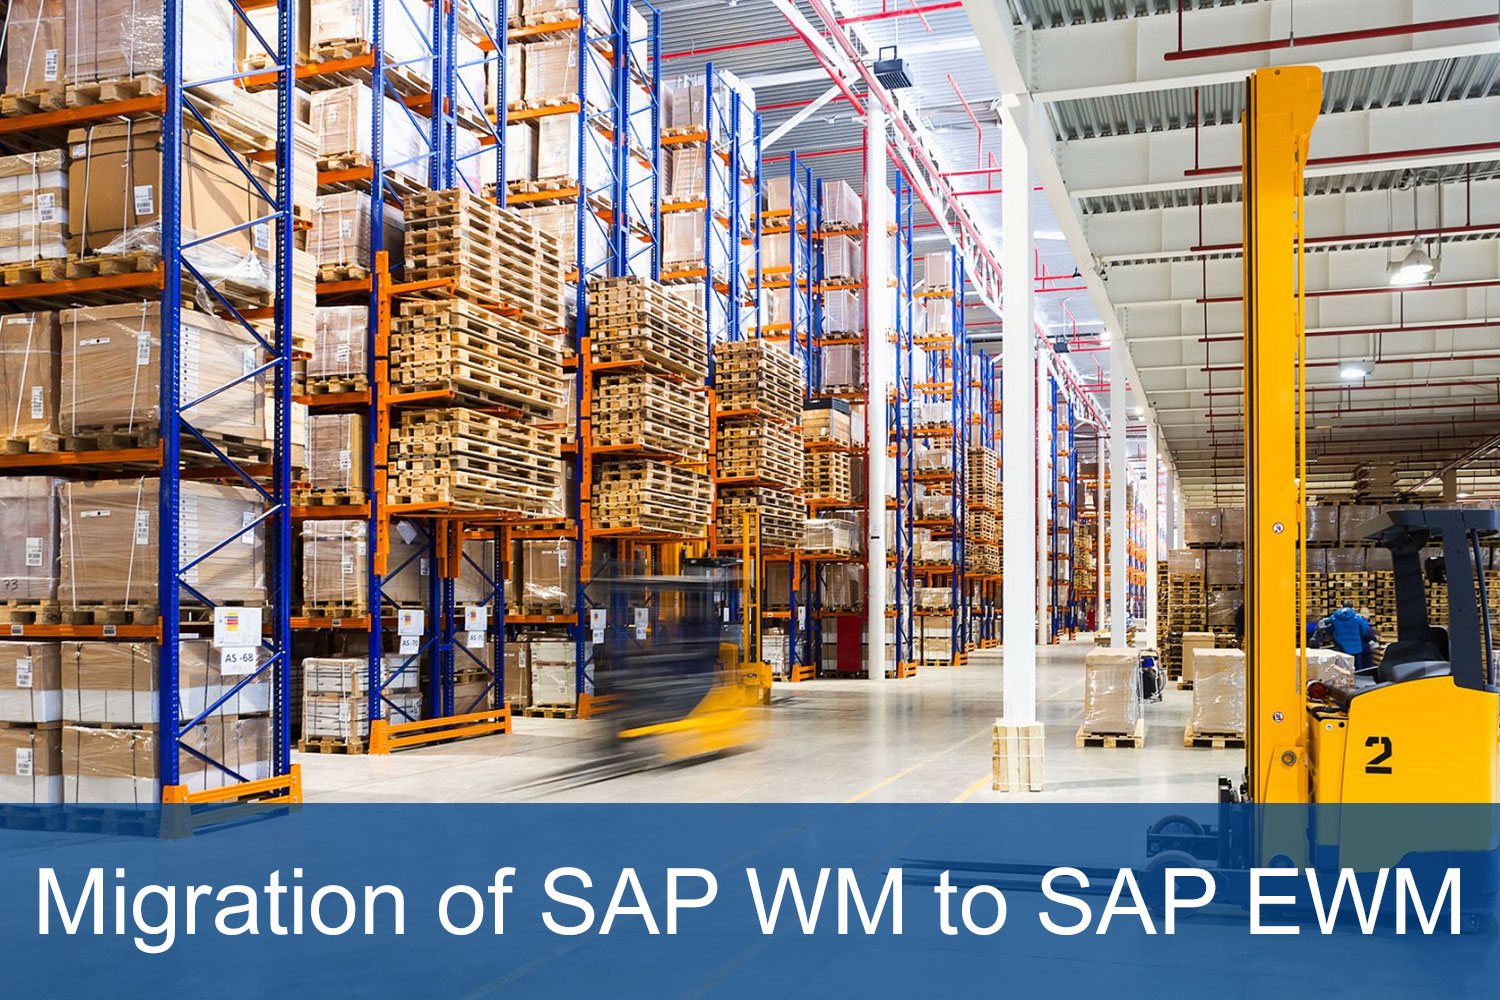 Migration of SAP WM to SAP EWM - First step to industry 4 0